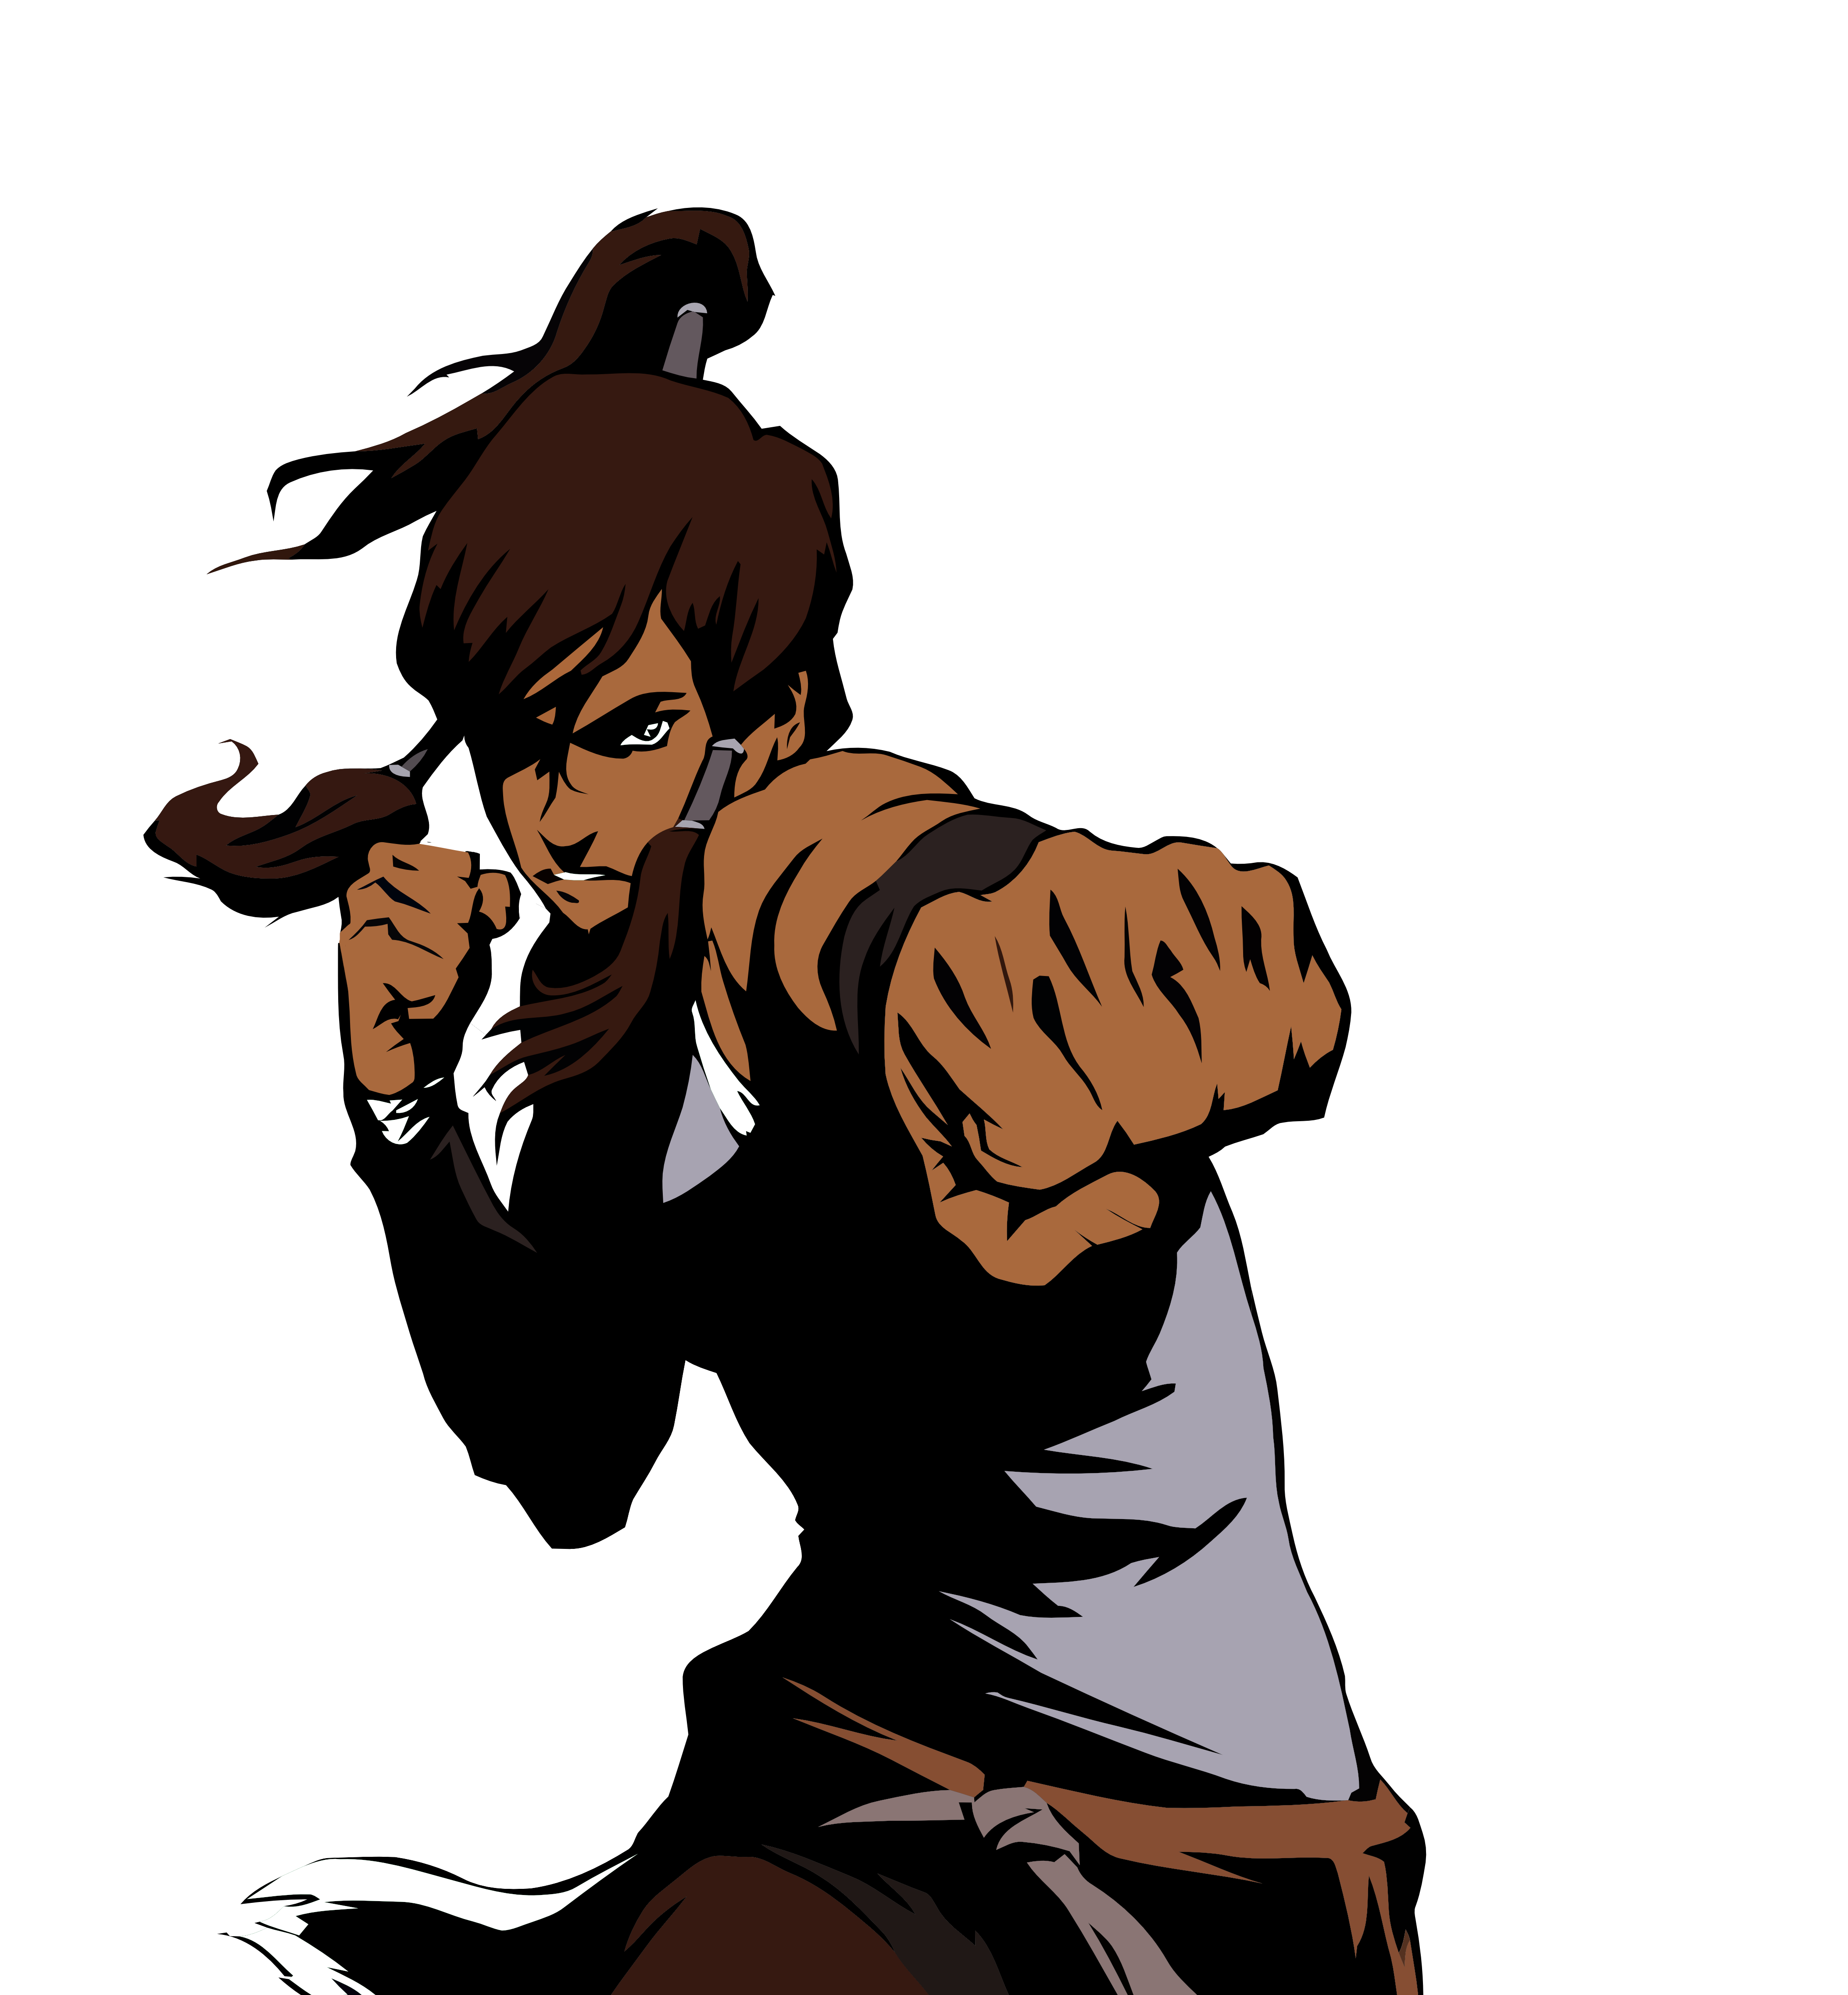 Booty transparent avatar the last airbender. O korra legend of